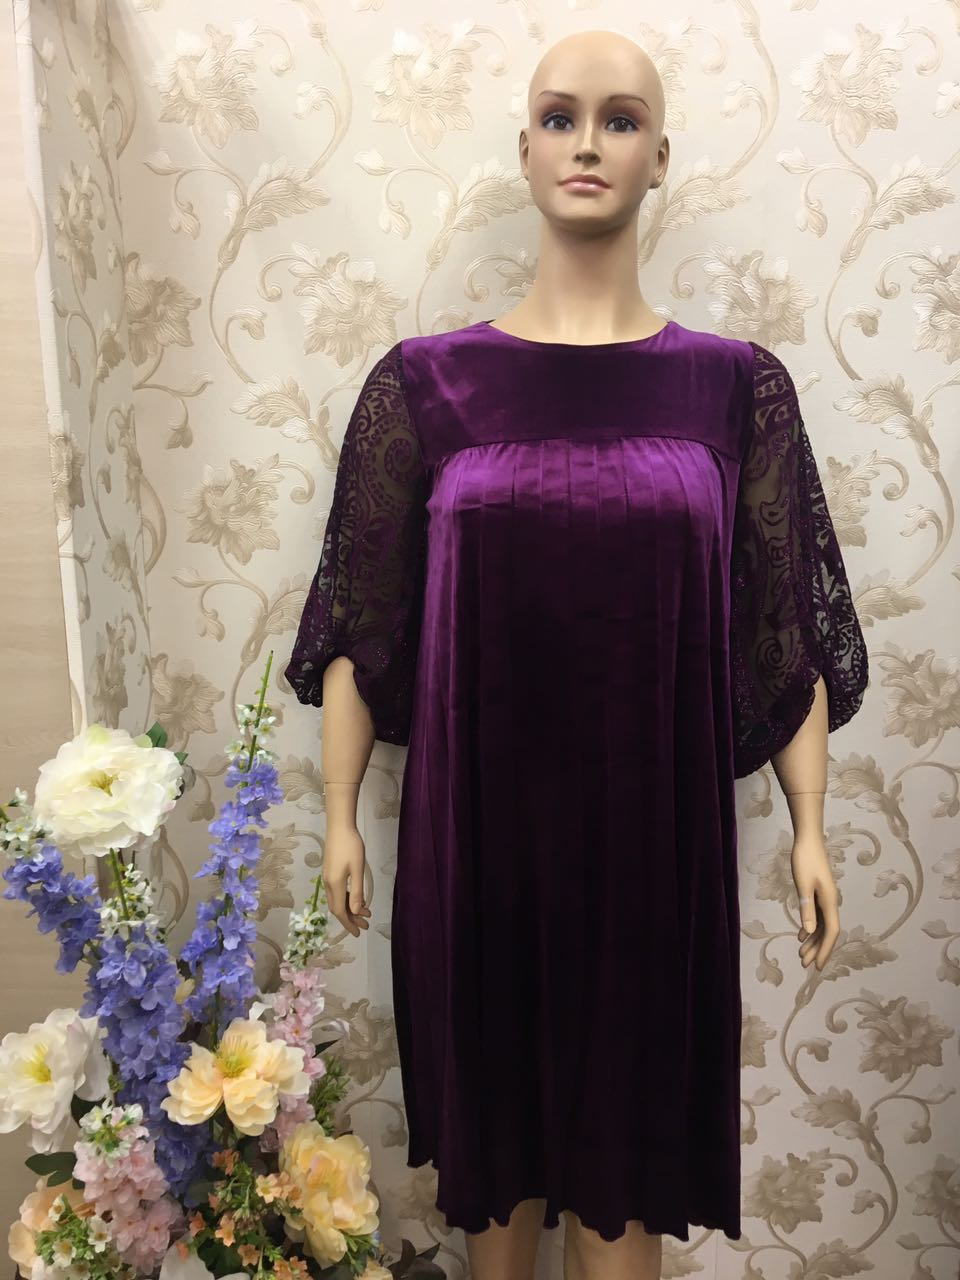 du-lusso-delicate-lace-and-pleats-graced-glossy-violet-dress